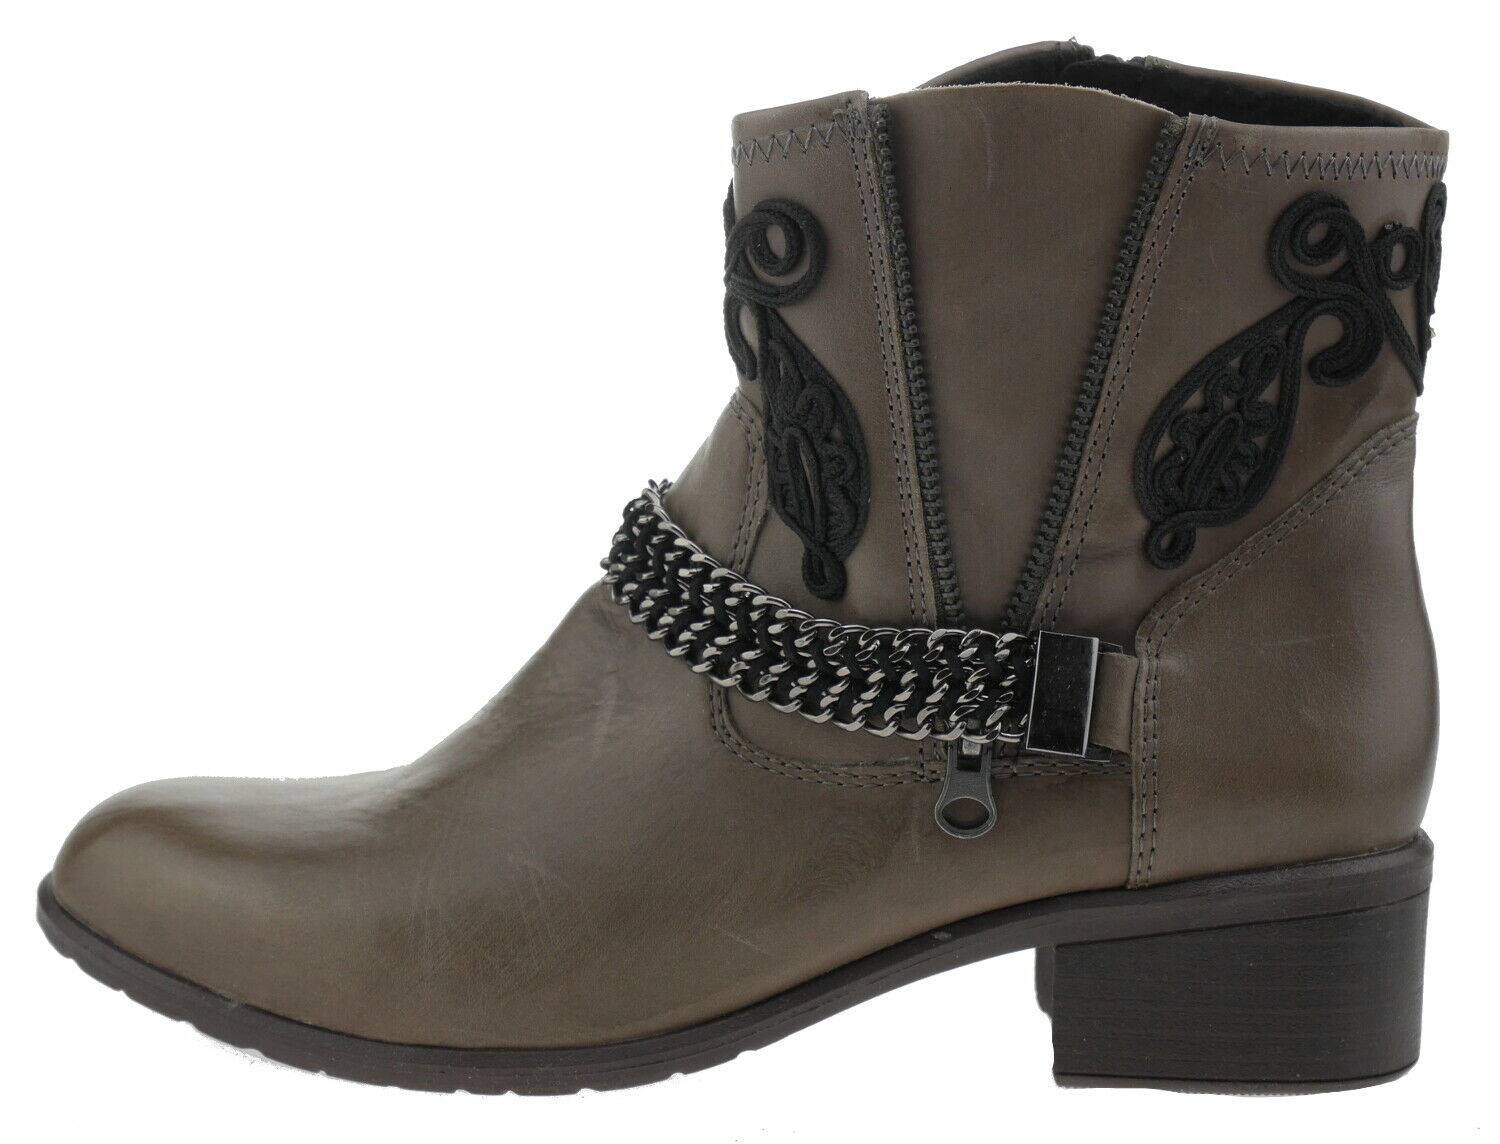 Laufsteg Hw150407 Leather Ankle Boot Taupe 185611